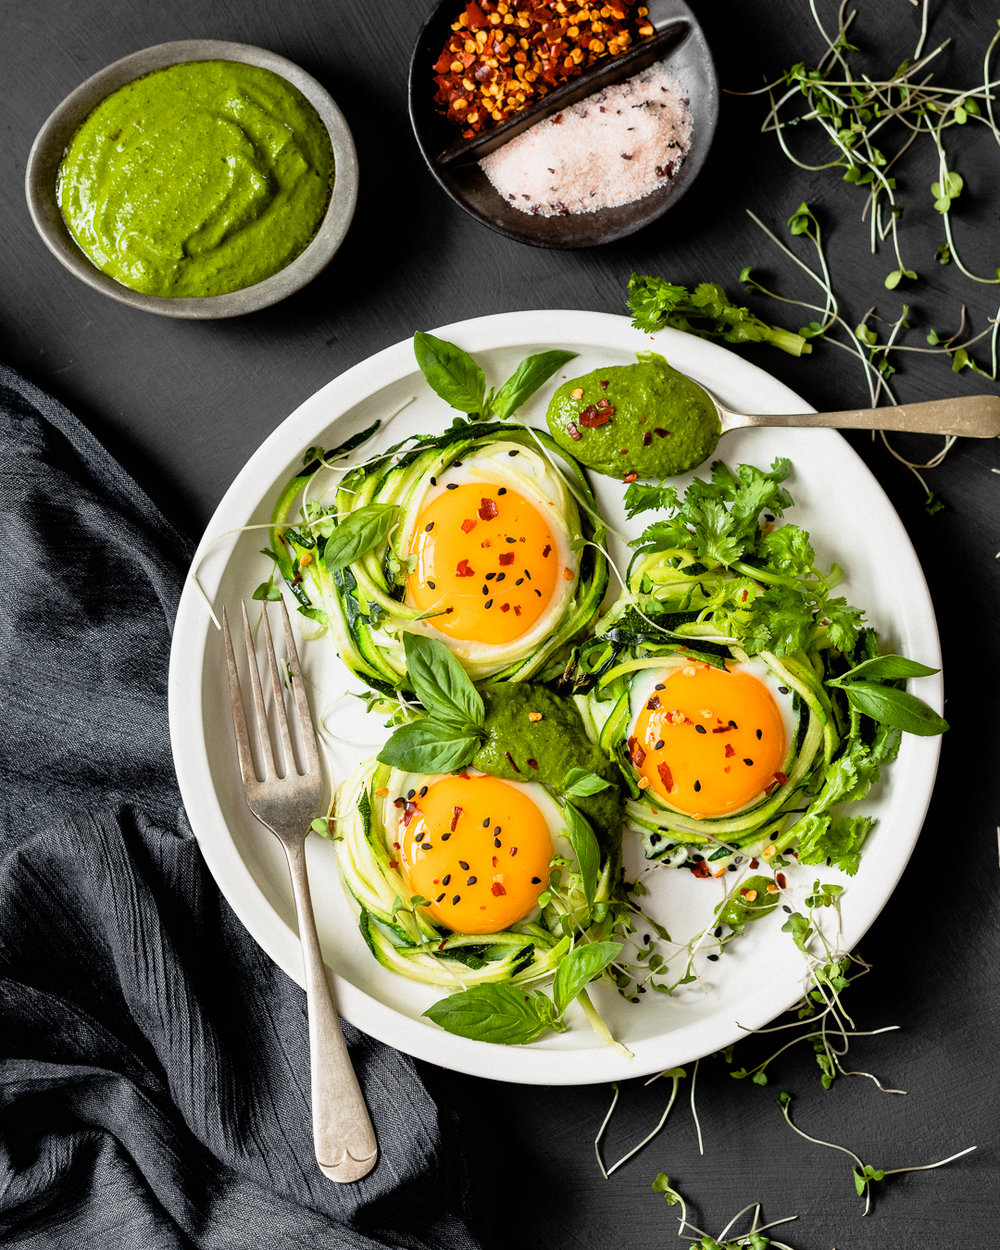 Zucchini_egg_nests_with_Chimichuri_by_Jordan_Pie_Nutritionist_Photographer-1.jpg